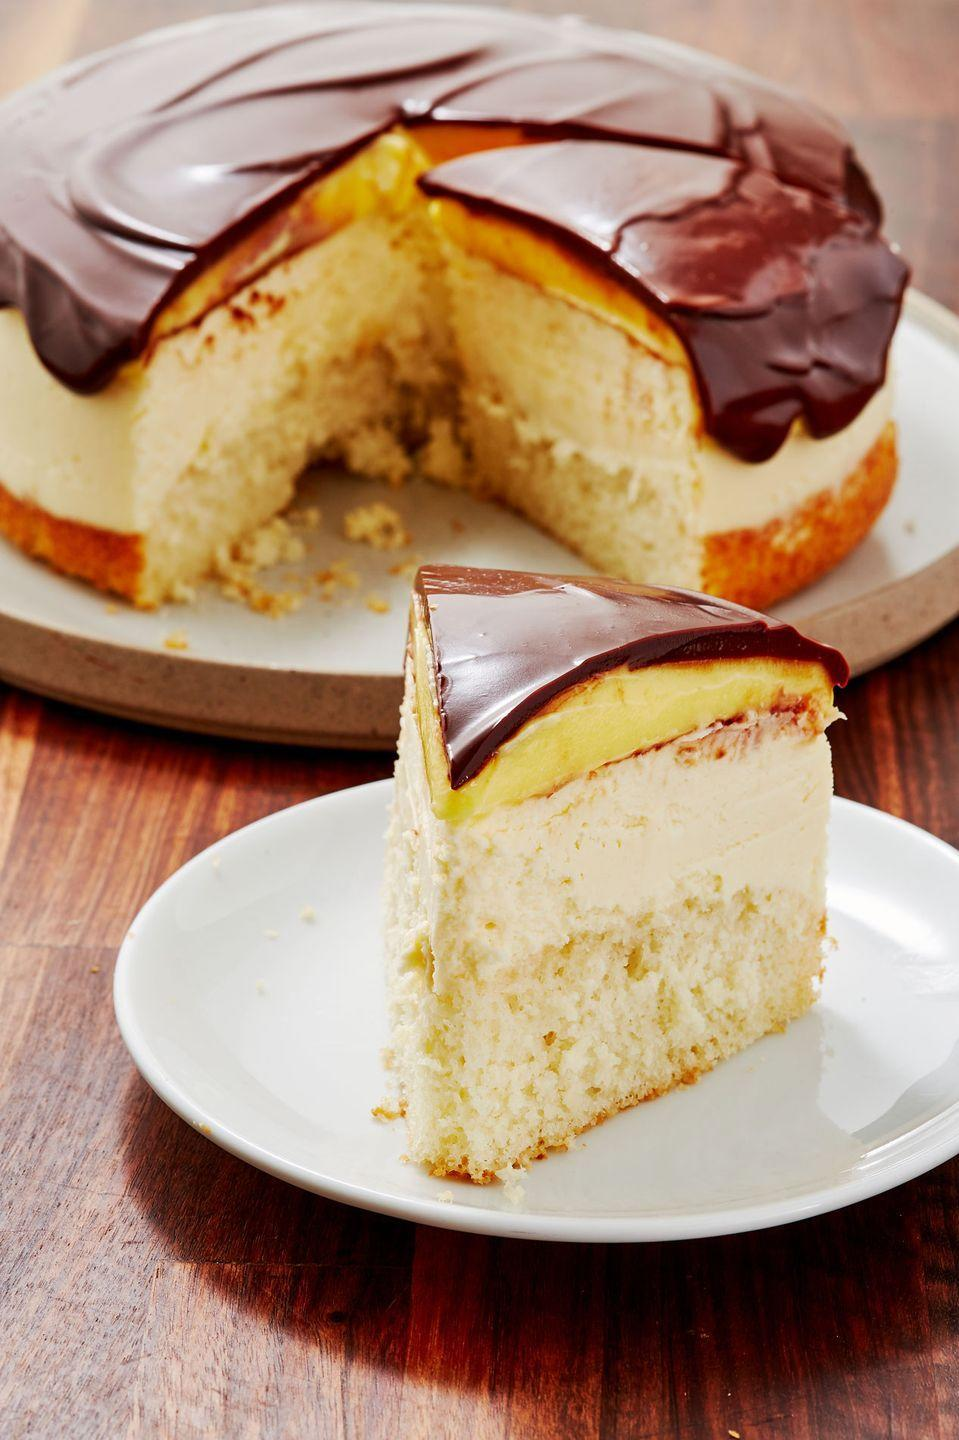 """<p>A new version of the beloved Boston Cream Pie.</p><p>Get the recipe from <a href=""""https://www.delish.com/cooking/recipe-ideas/recipes/a55967/boston-cream-cheesecake-recipe/"""" rel=""""nofollow noopener"""" target=""""_blank"""" data-ylk=""""slk:Delish"""" class=""""link rapid-noclick-resp"""">Delish</a>. </p>"""